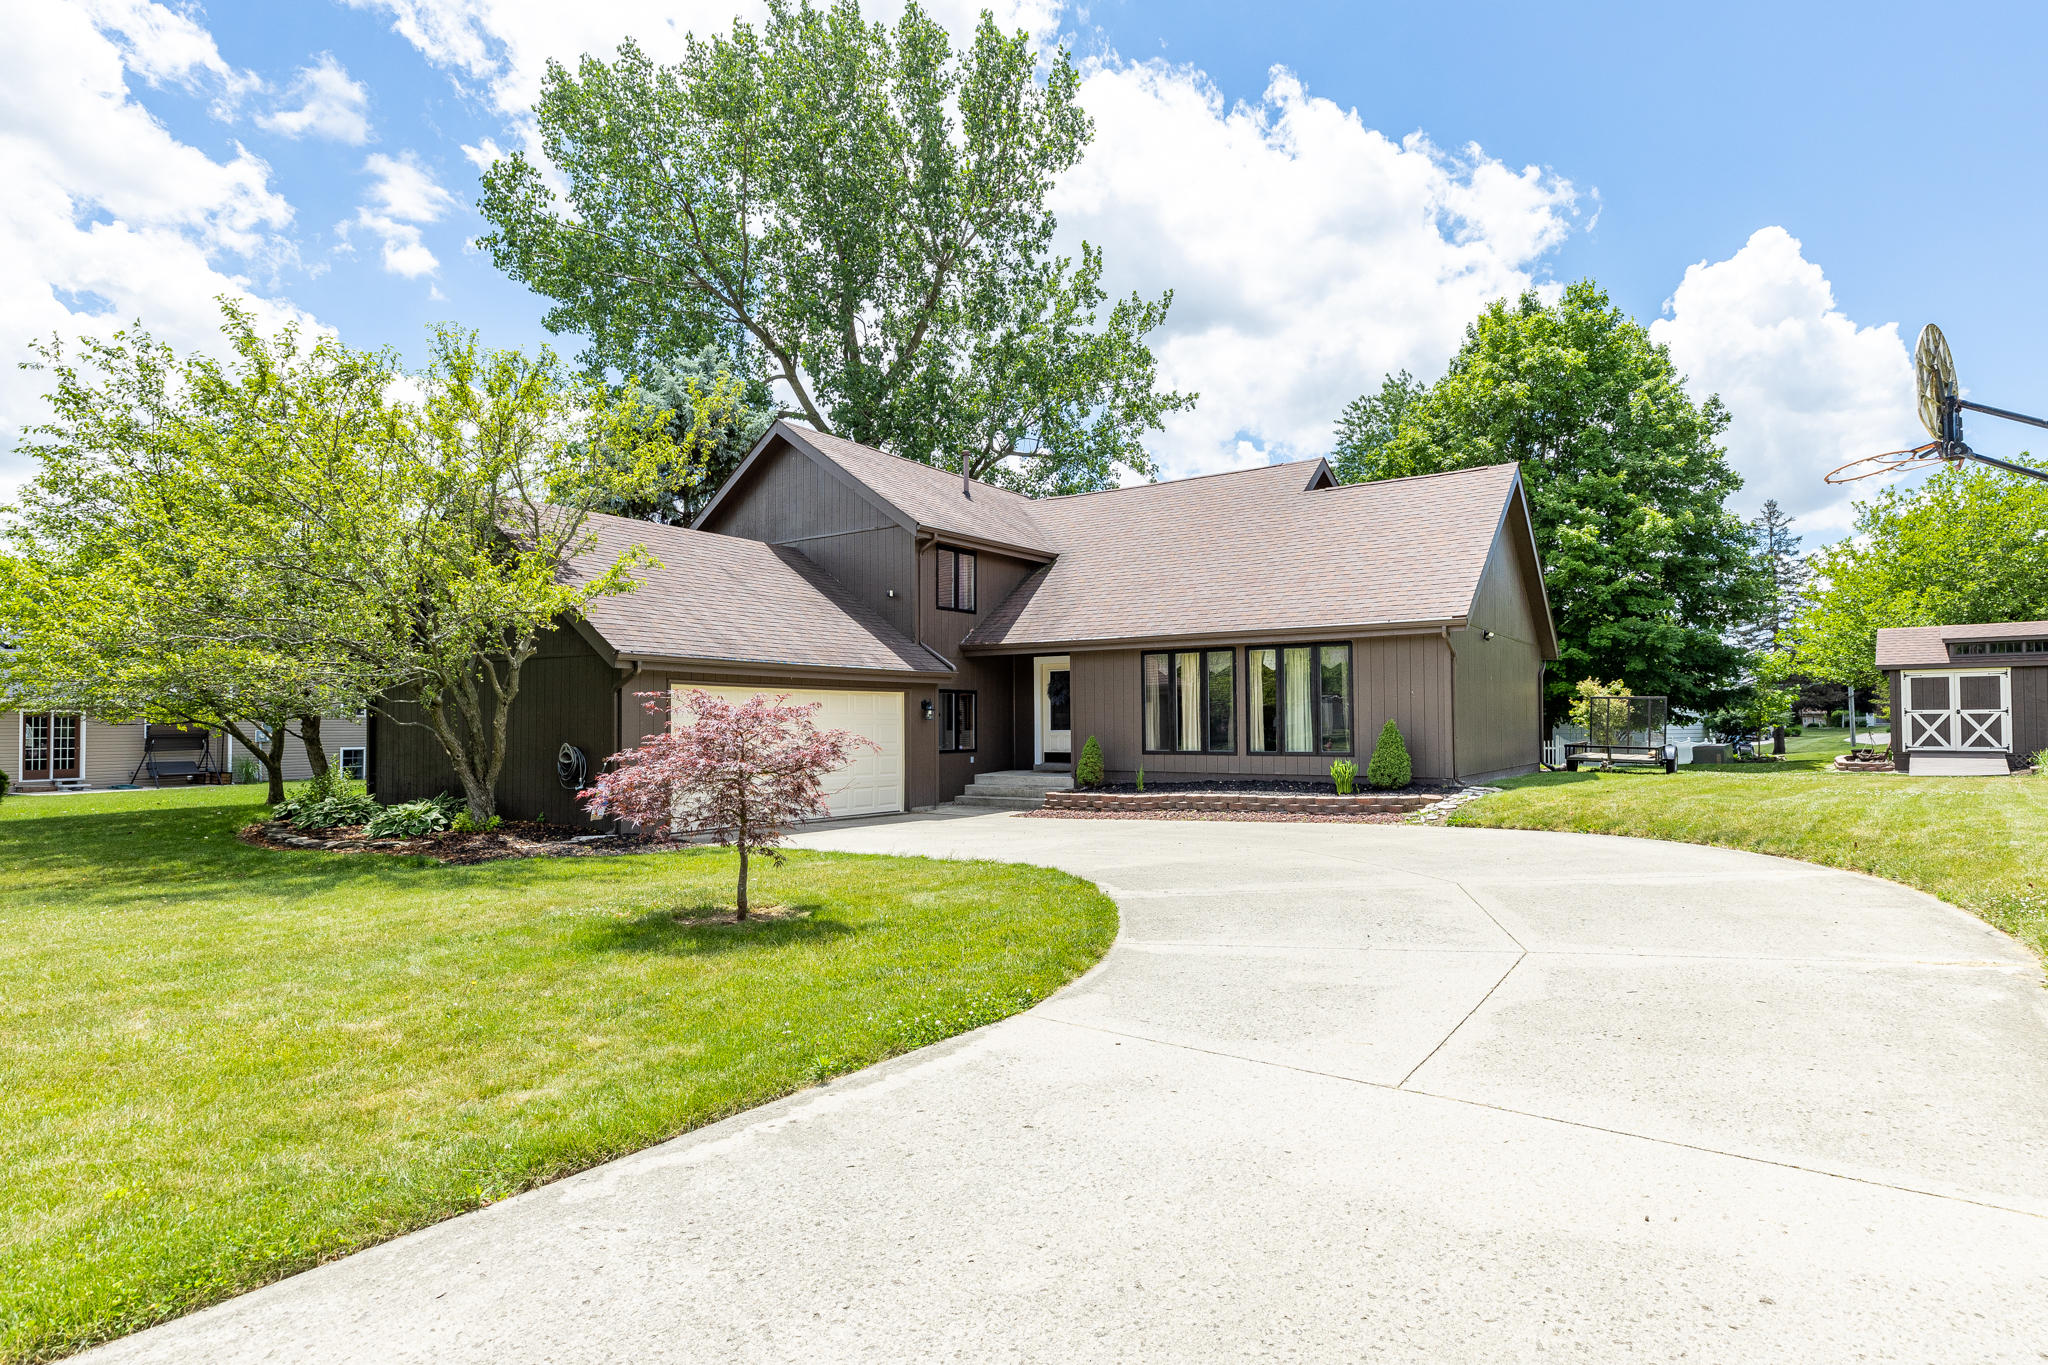 505 Oakwood Dr Bellefontaine, OH